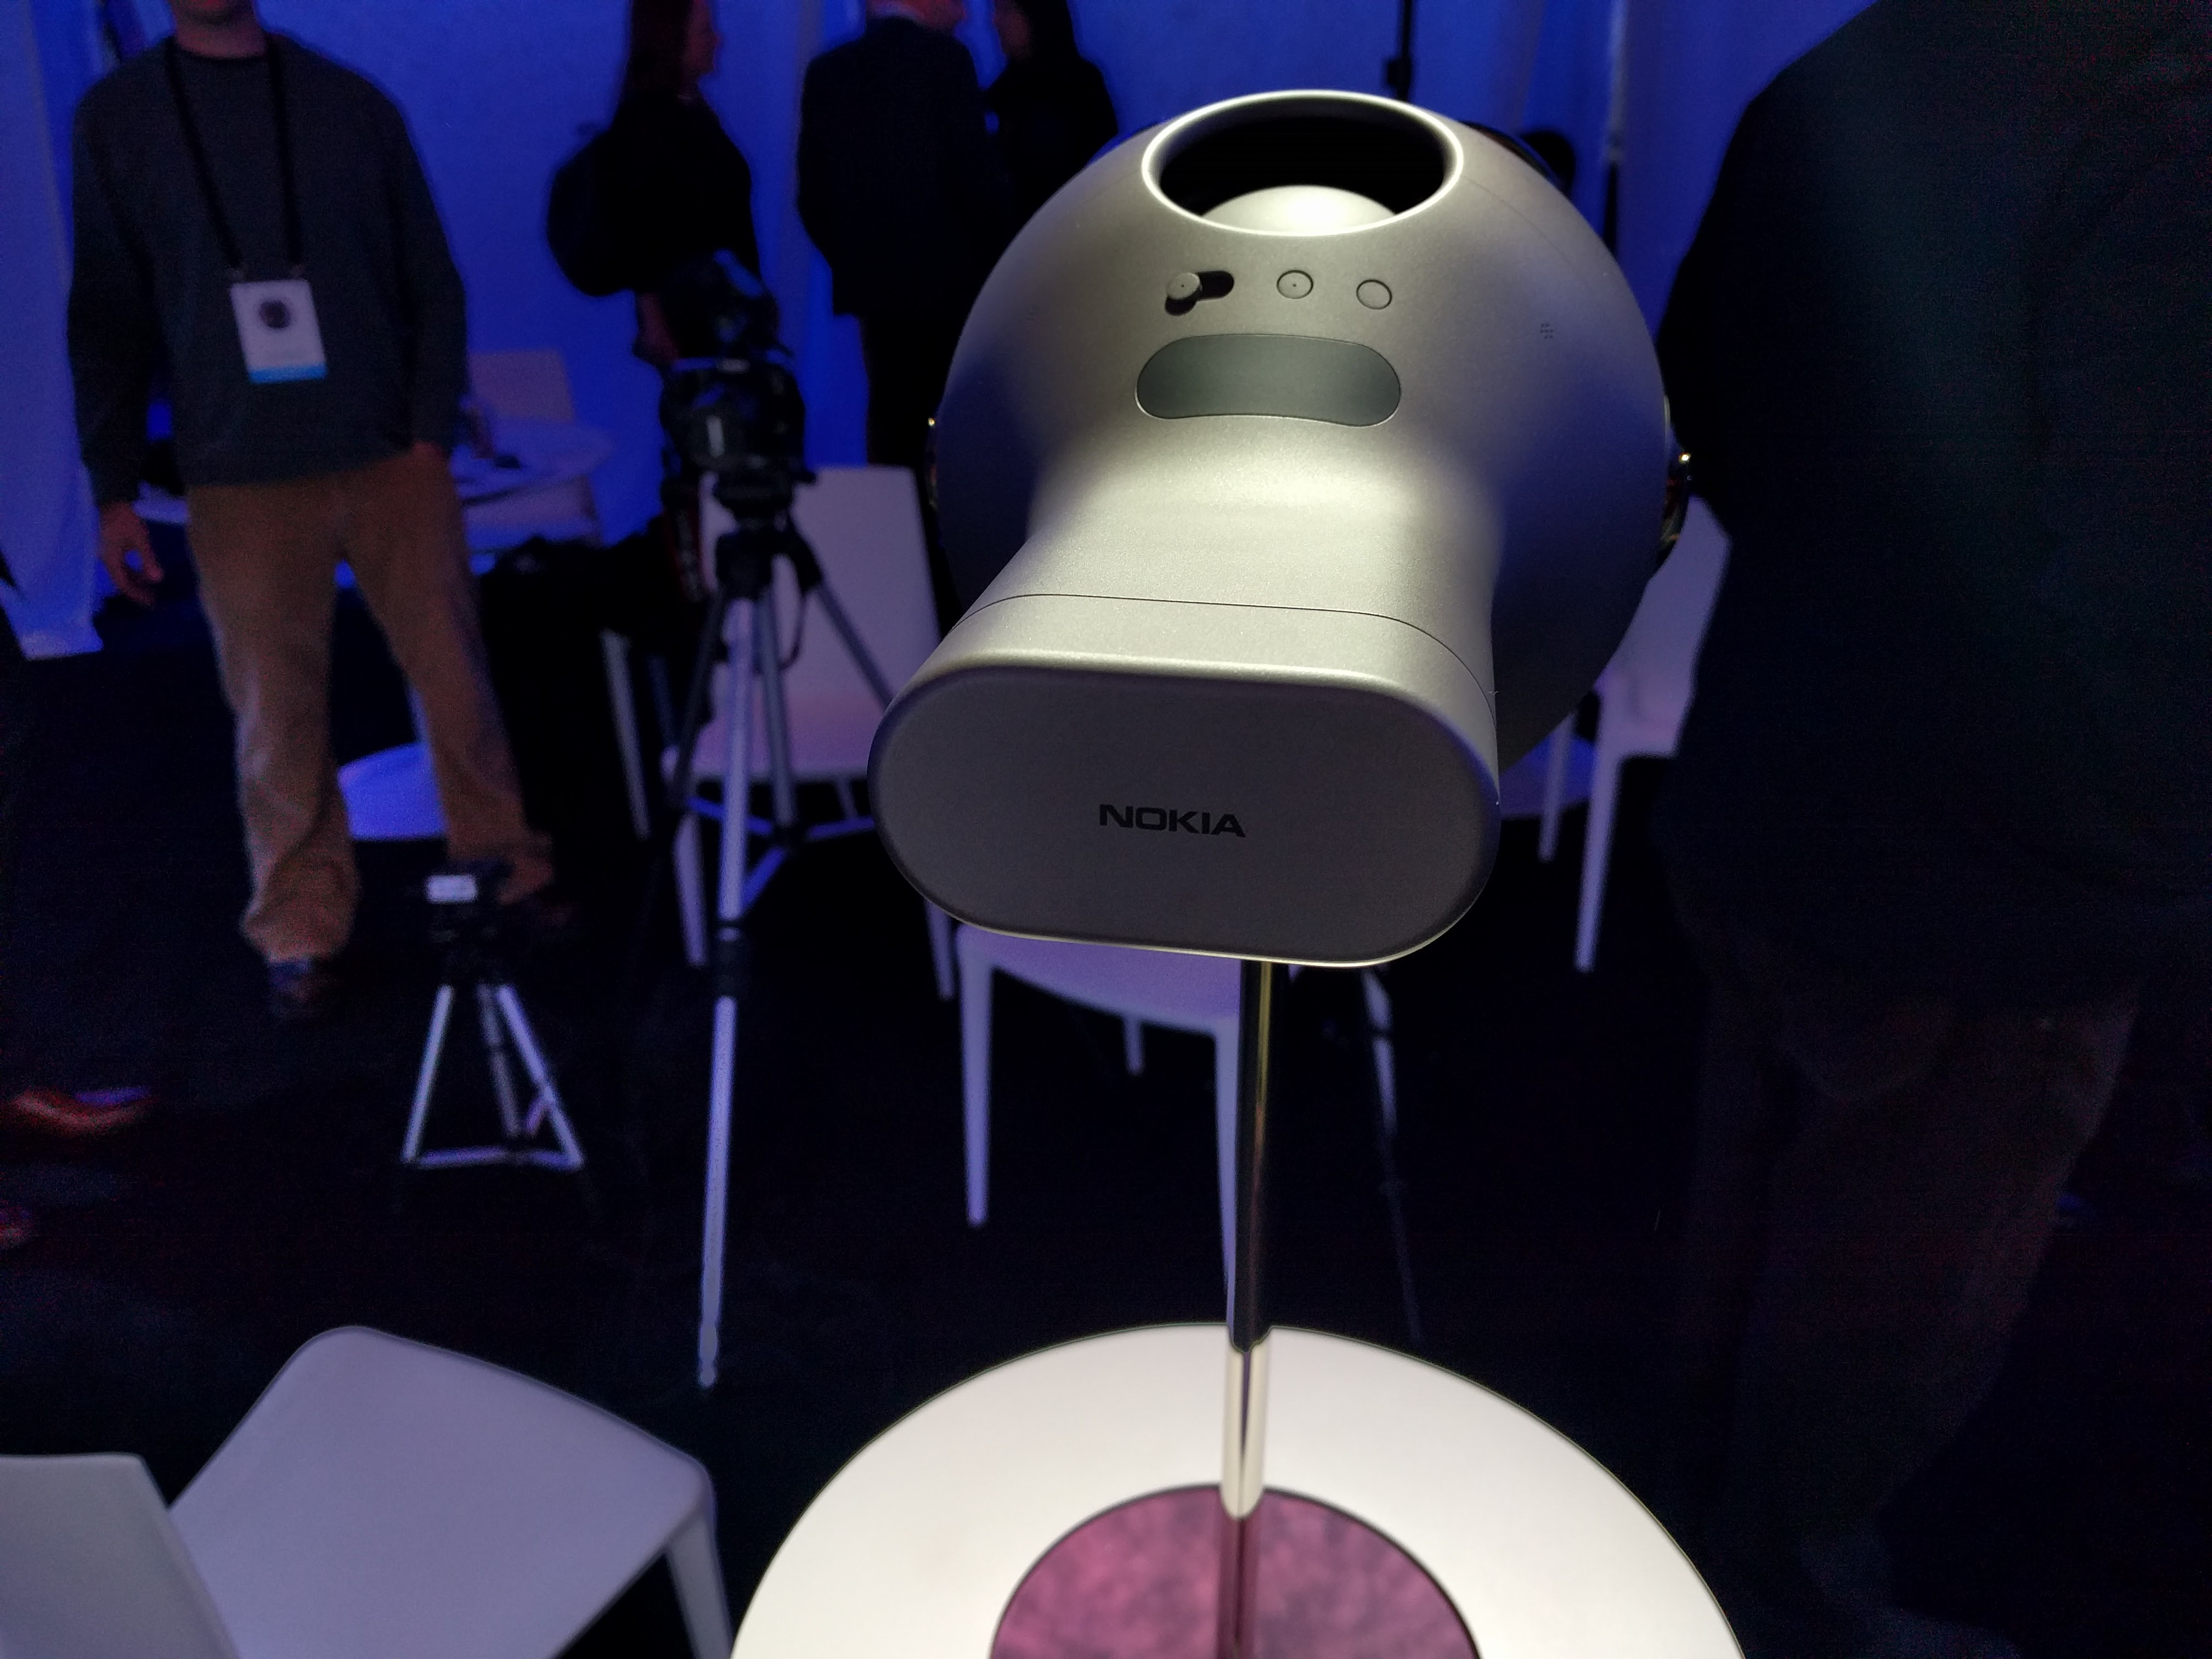 The Nokia Ozo virtual reality camera.